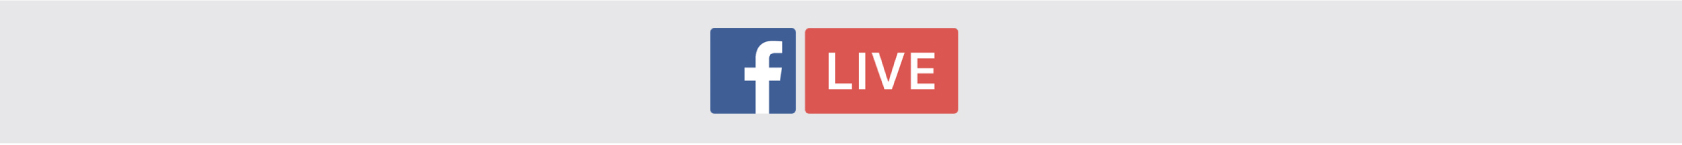 When On Air Watch Live Via Facebook Live Streaming